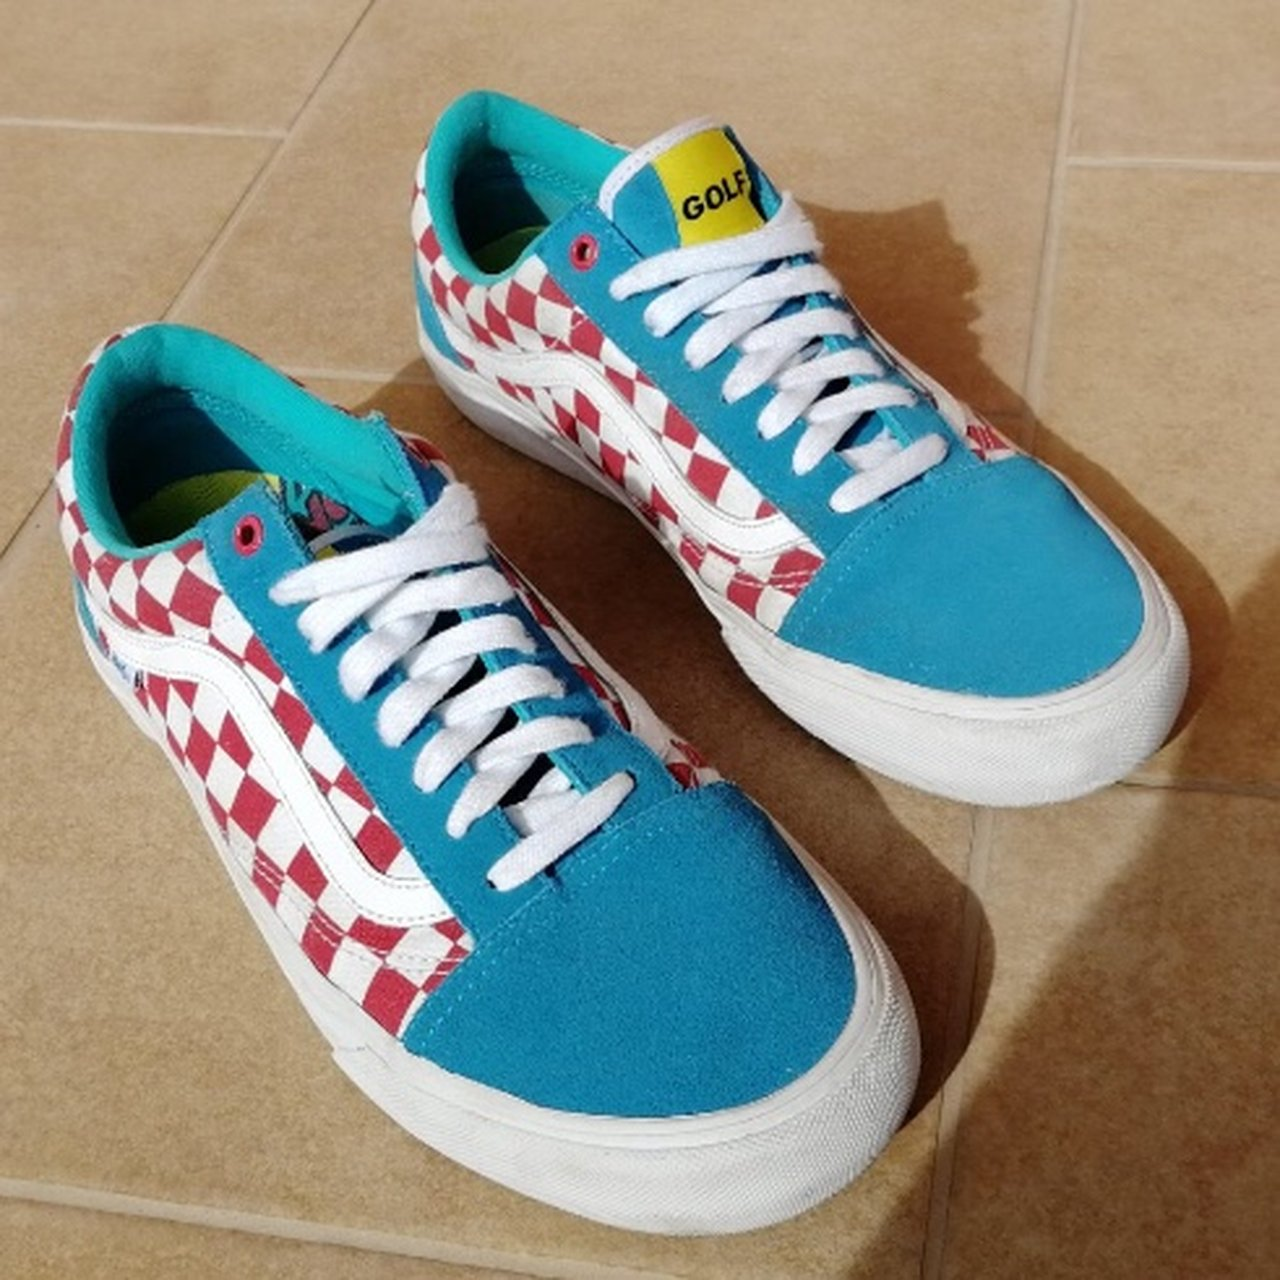 da10686b402c Want To Sell Golf Wang x Vans Old School Size  44 (10.5US - Depop